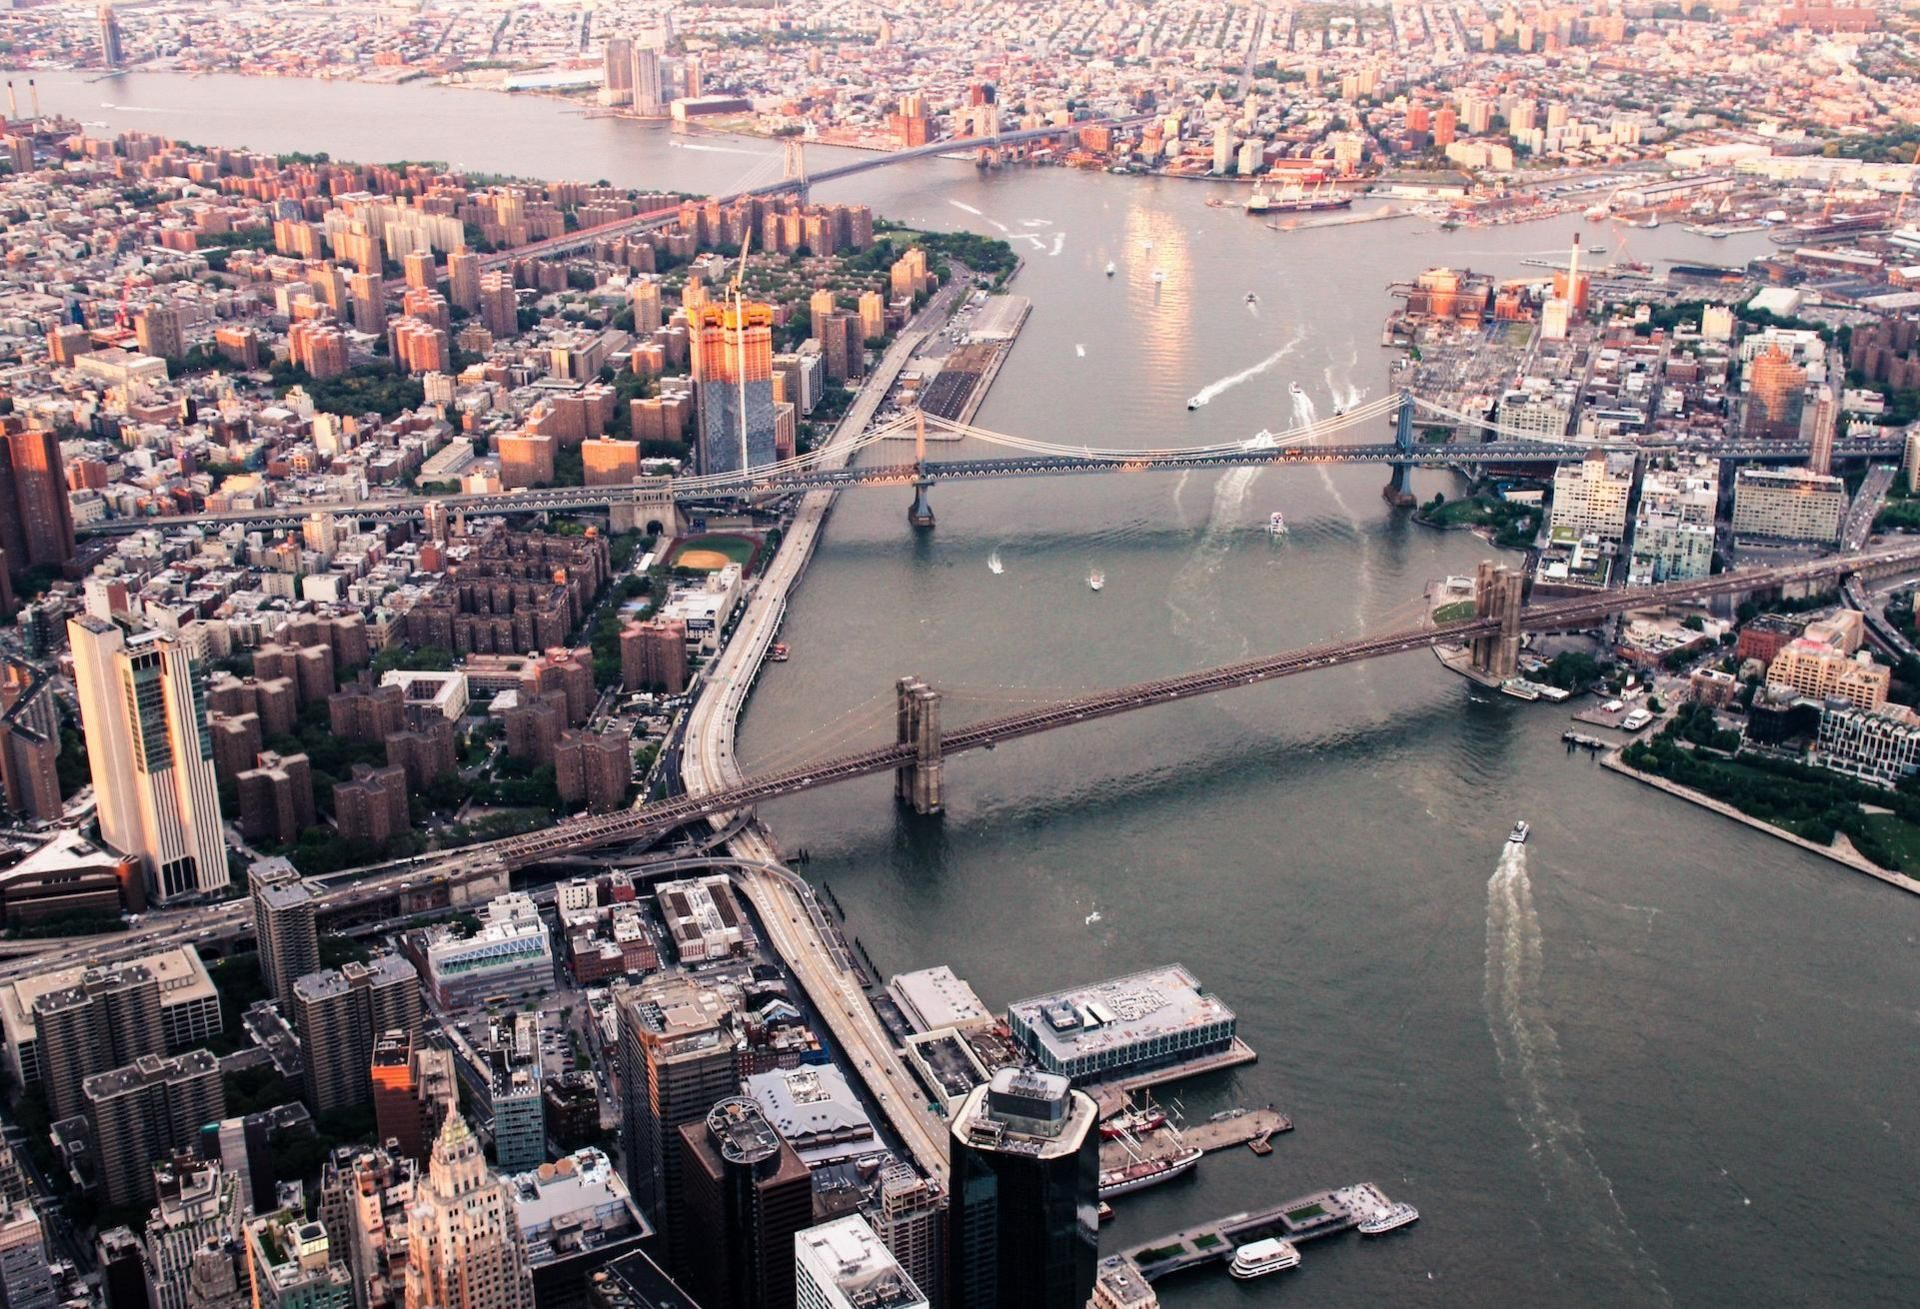 Lower Prices, Buyer Buzz Bolster Hopes For Condo Market In Brooklyn, Queens